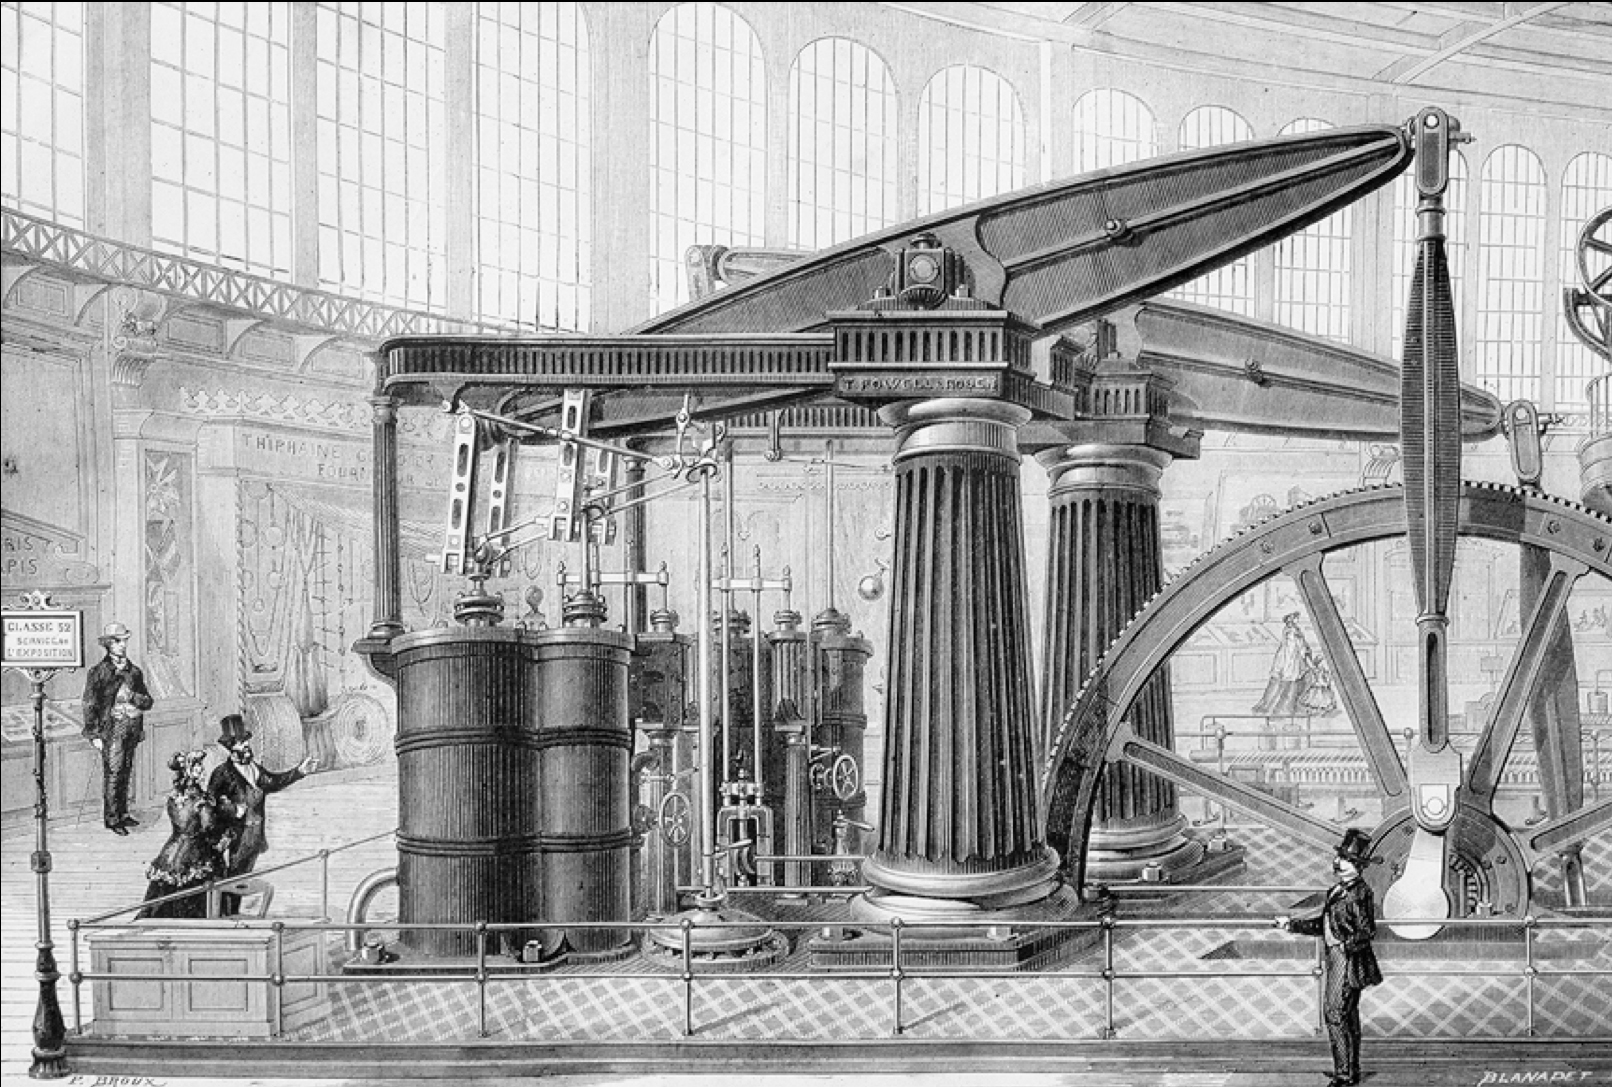 Industrialists still labored under a sense of inferiority to the fine arts, as seen in this attempt to dress up a machine with fluted Doric columns.